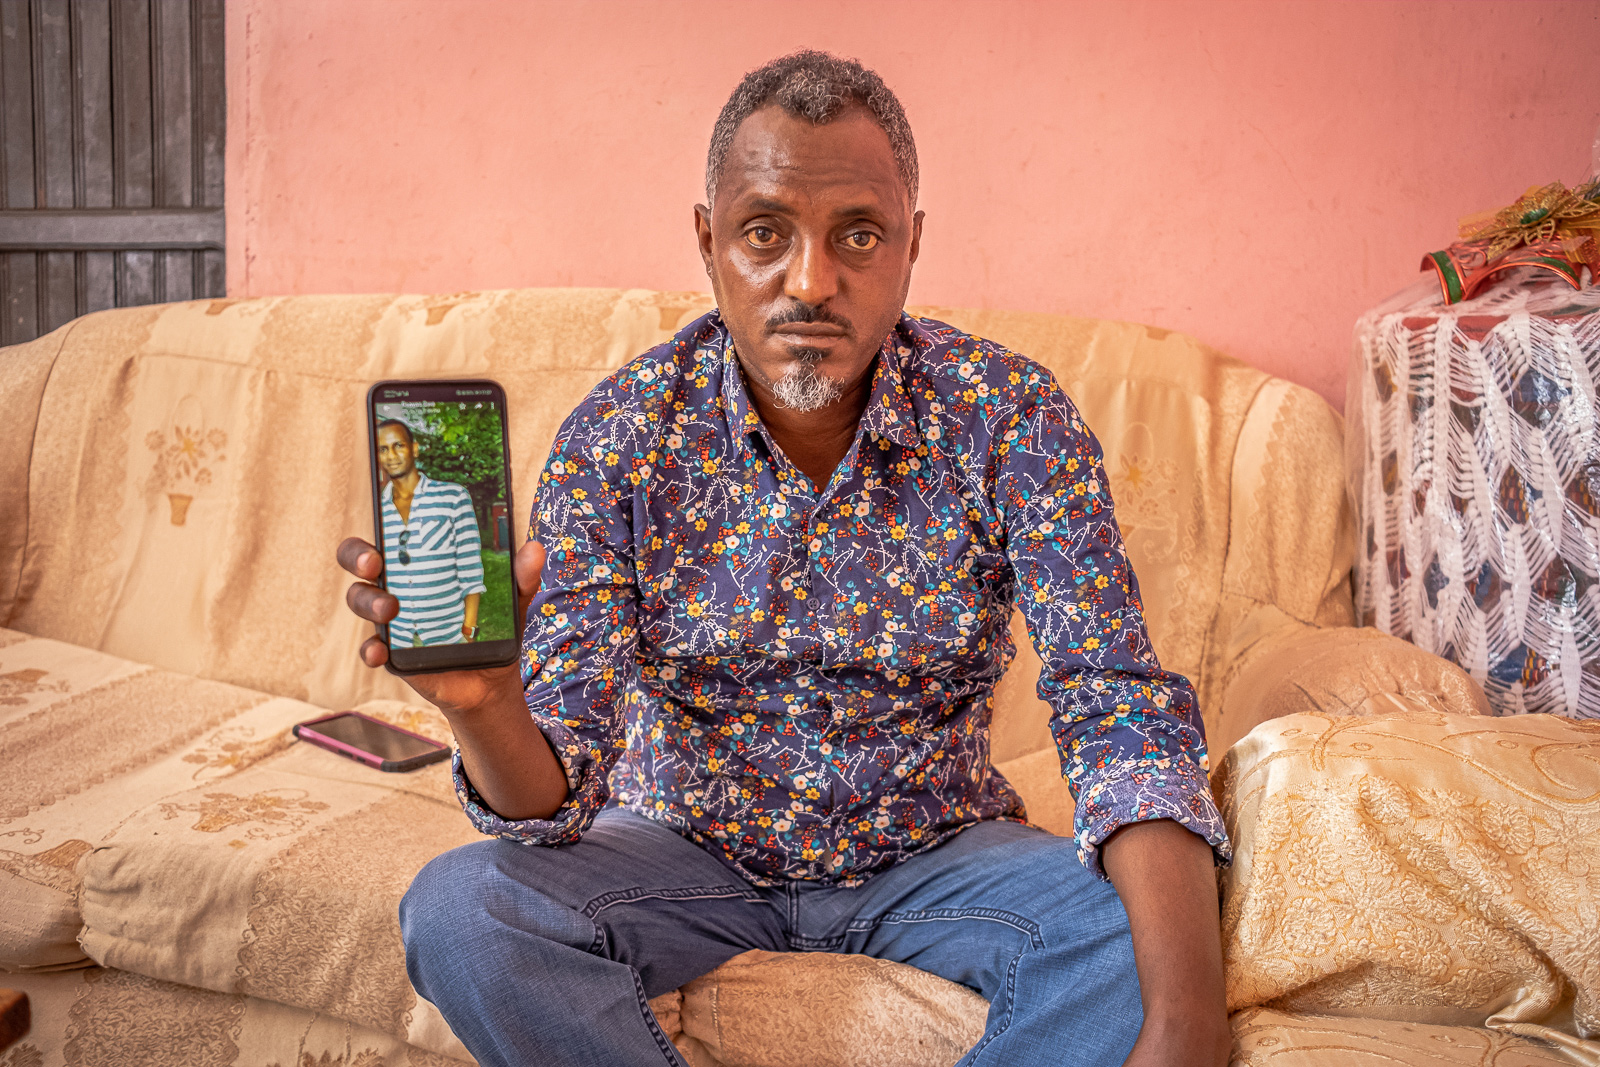 February 2020: Ephrem Fikru, Tekie's nephew, shows a photo of his uncle on his cellphone.